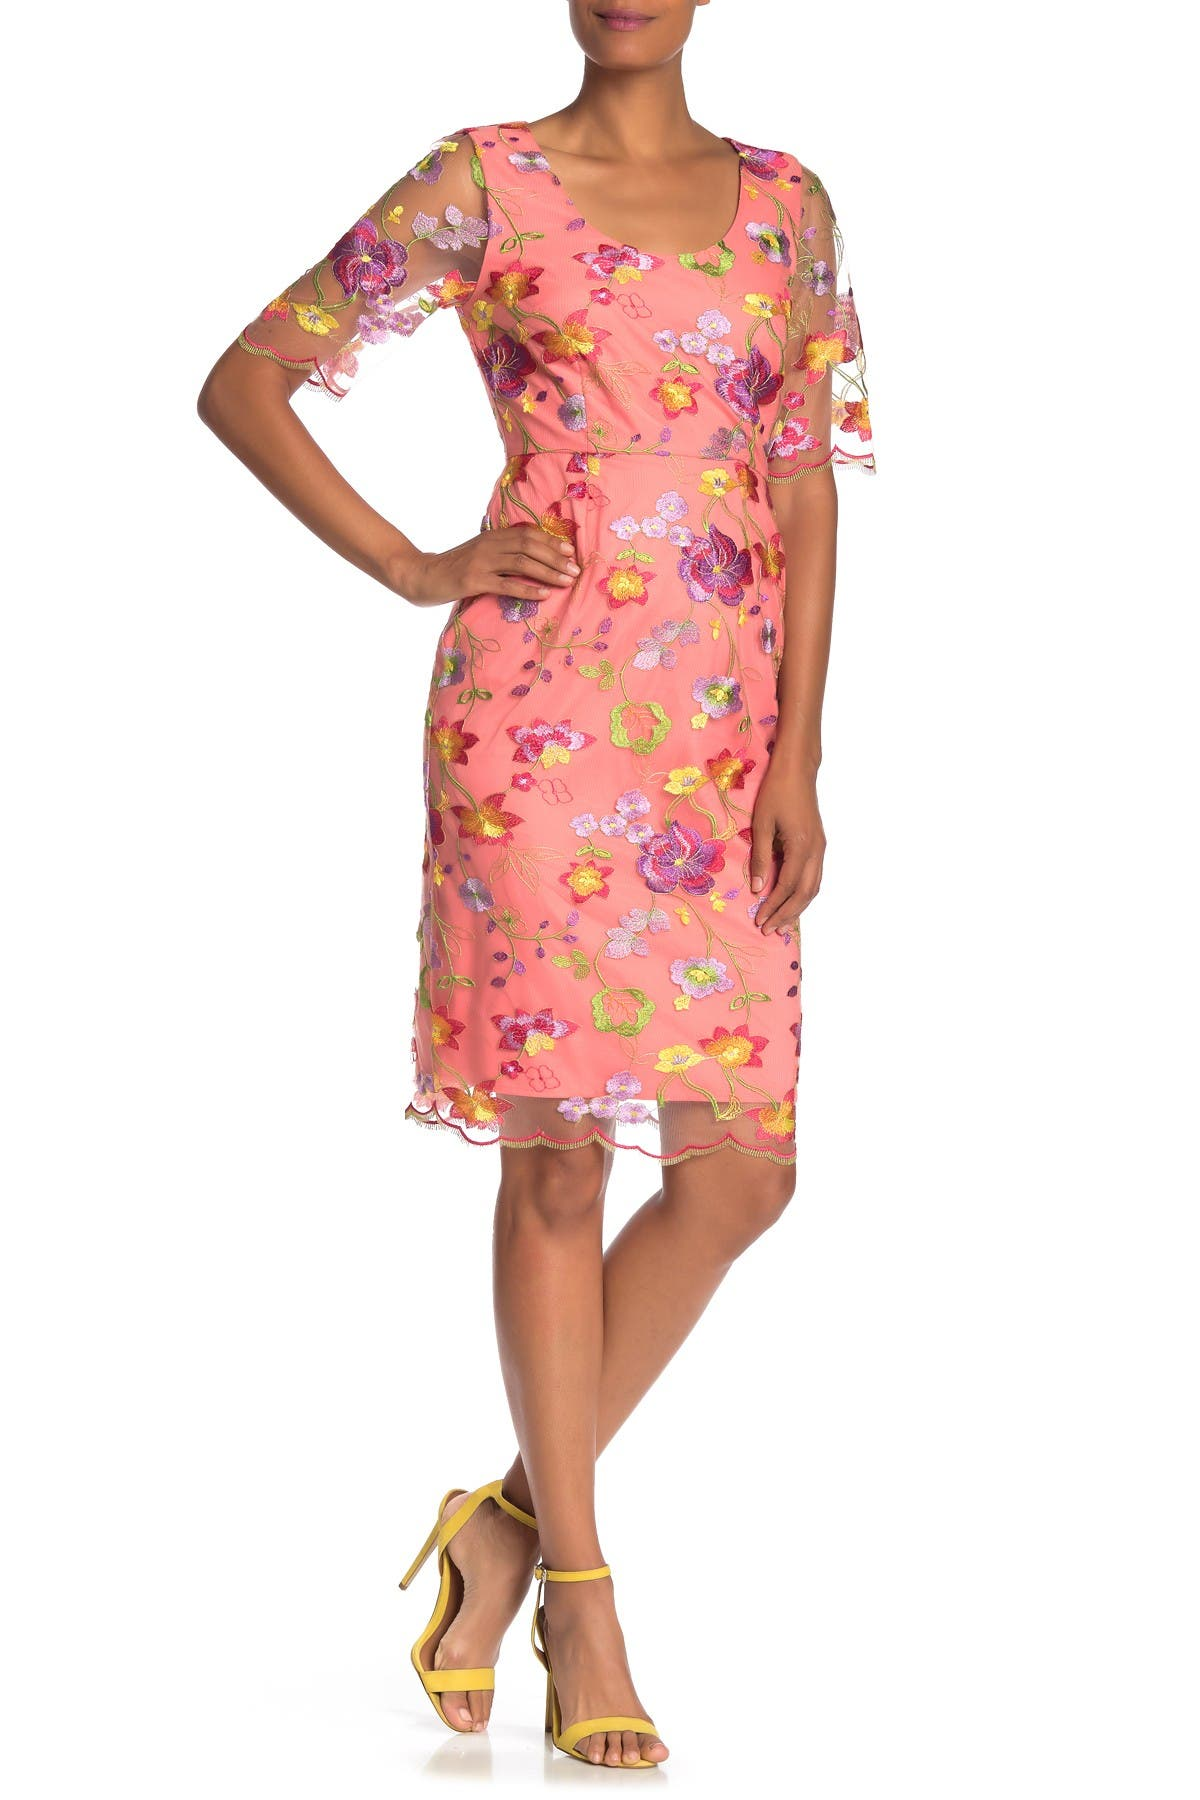 Image of trina Trina Turk Romance Floral Embroidered Sheath Dress